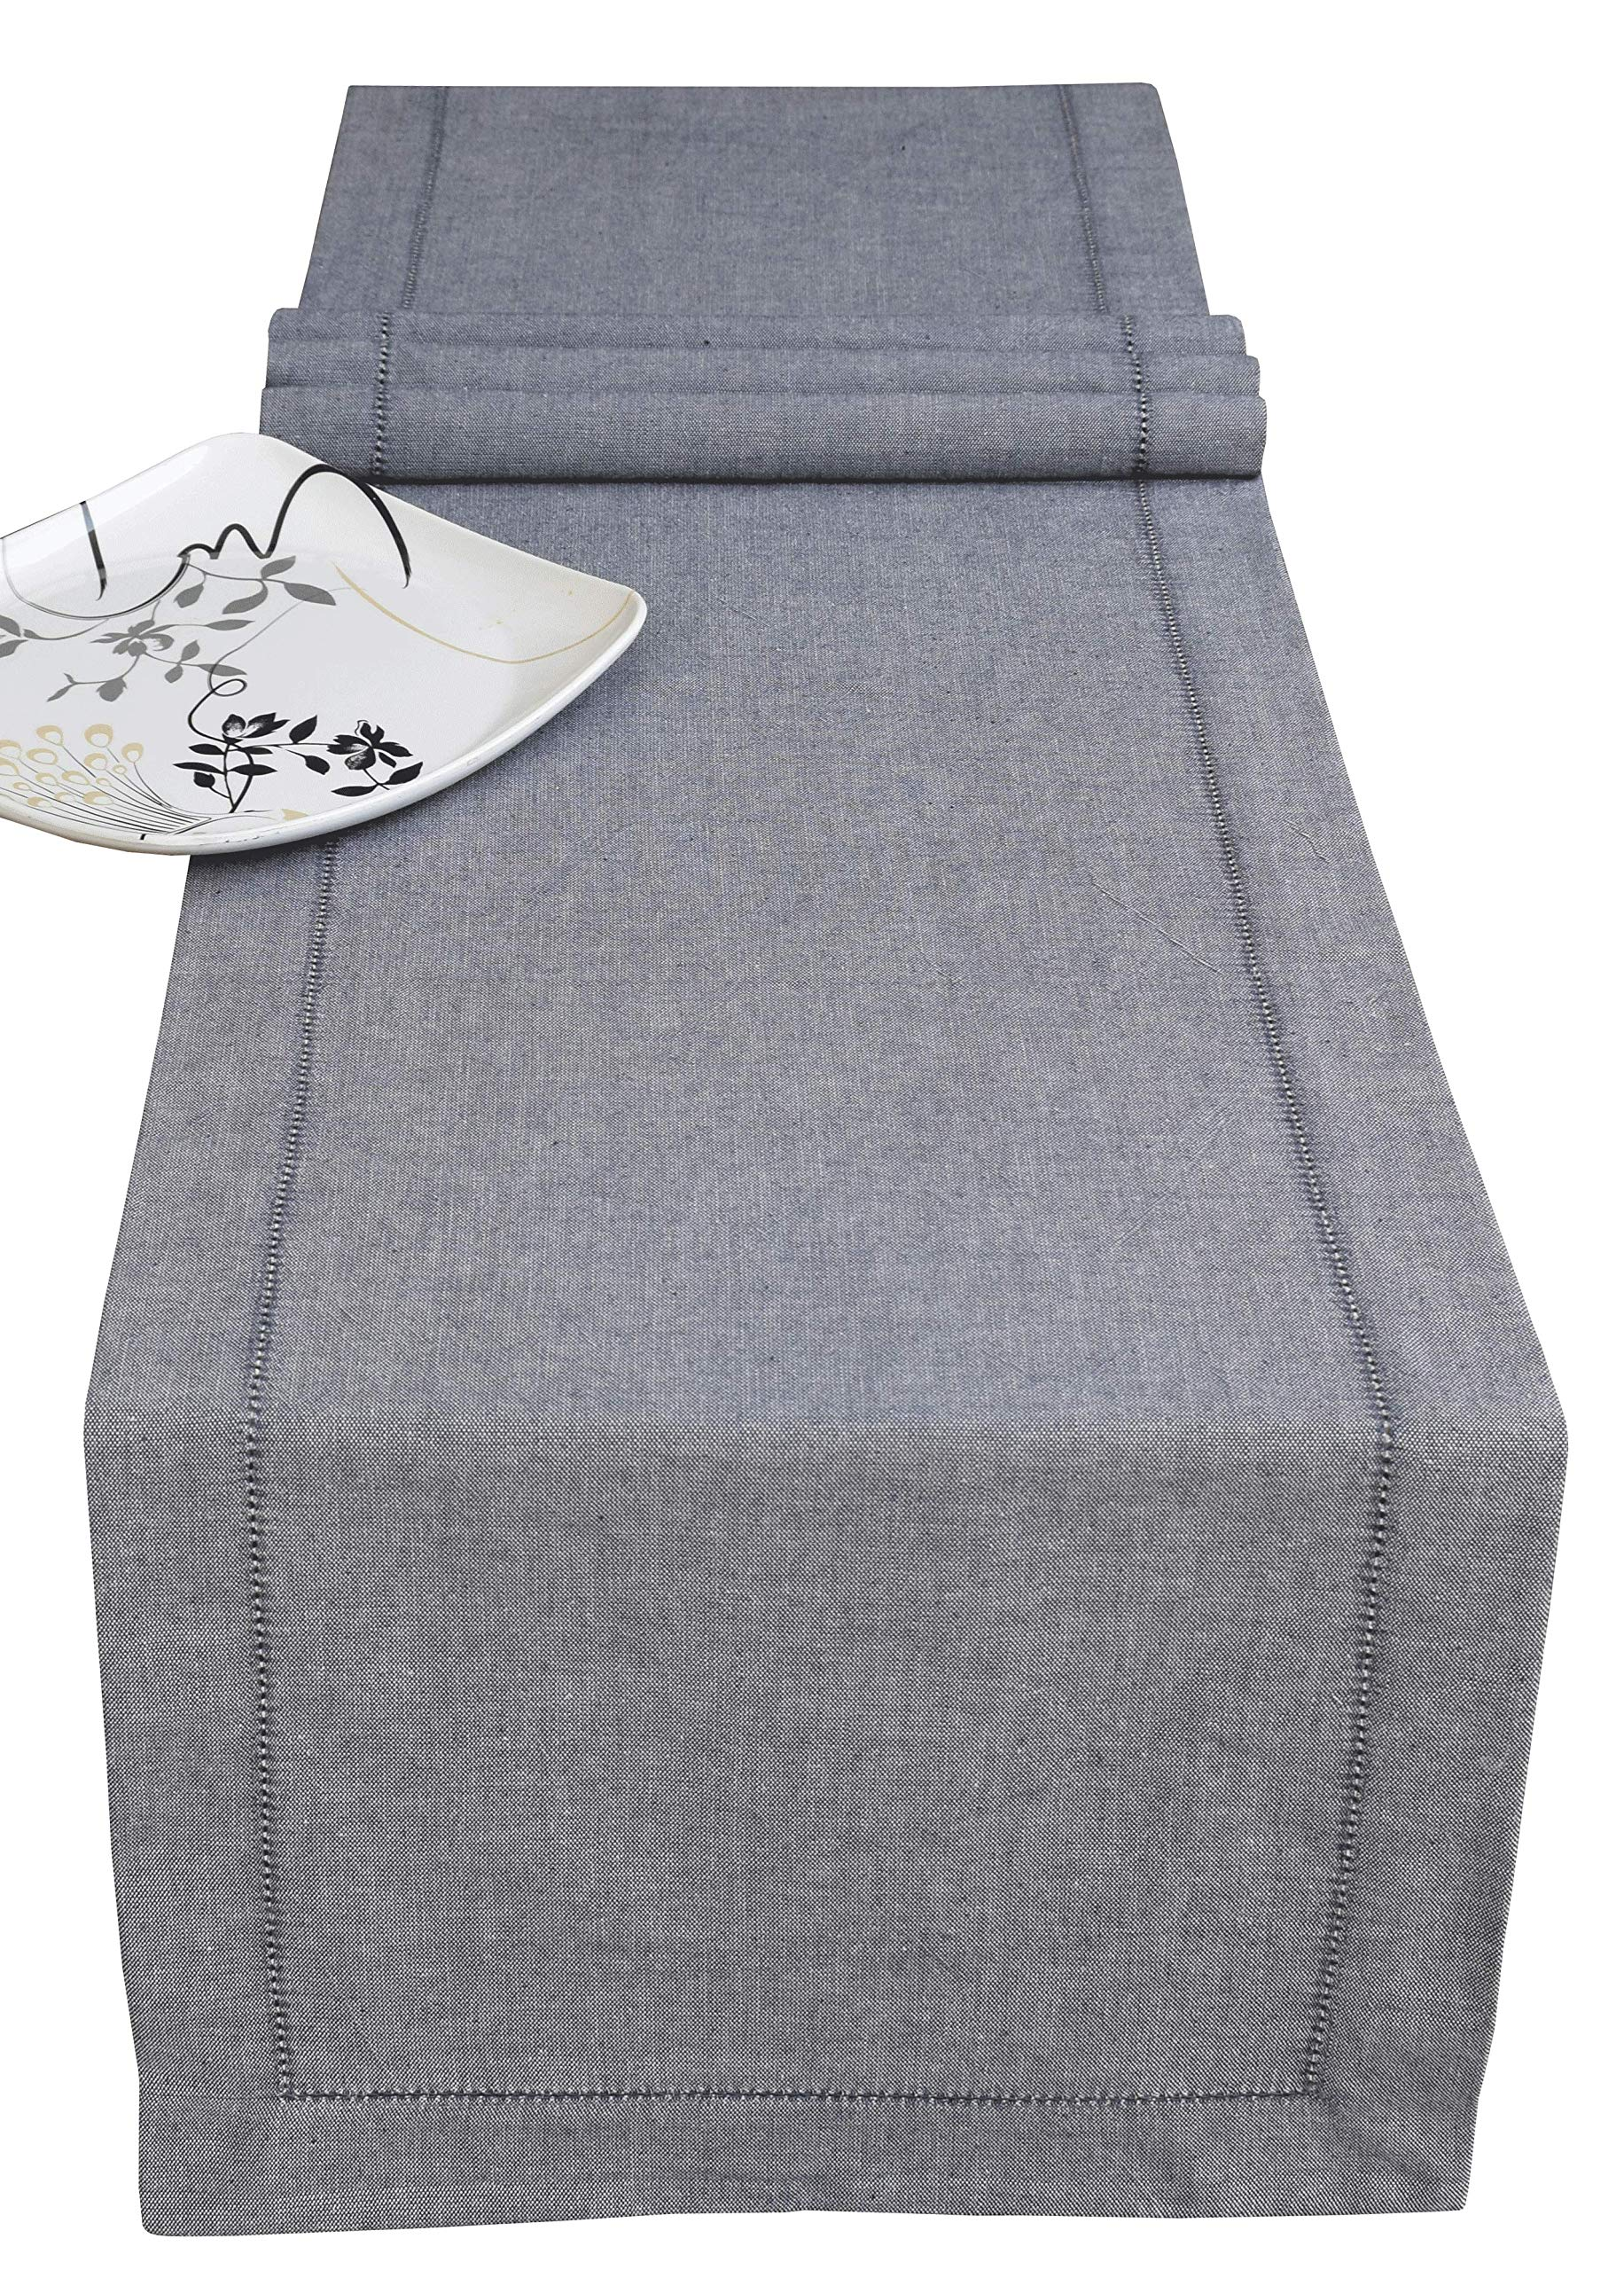 Light & Pro Cotton Chambray Table Runner with Hemstitched -16x90 Navy -Decorative Runners Perfect for Family Dinners or Gatherings, Indoor or Outdoor Parties, Everyday use